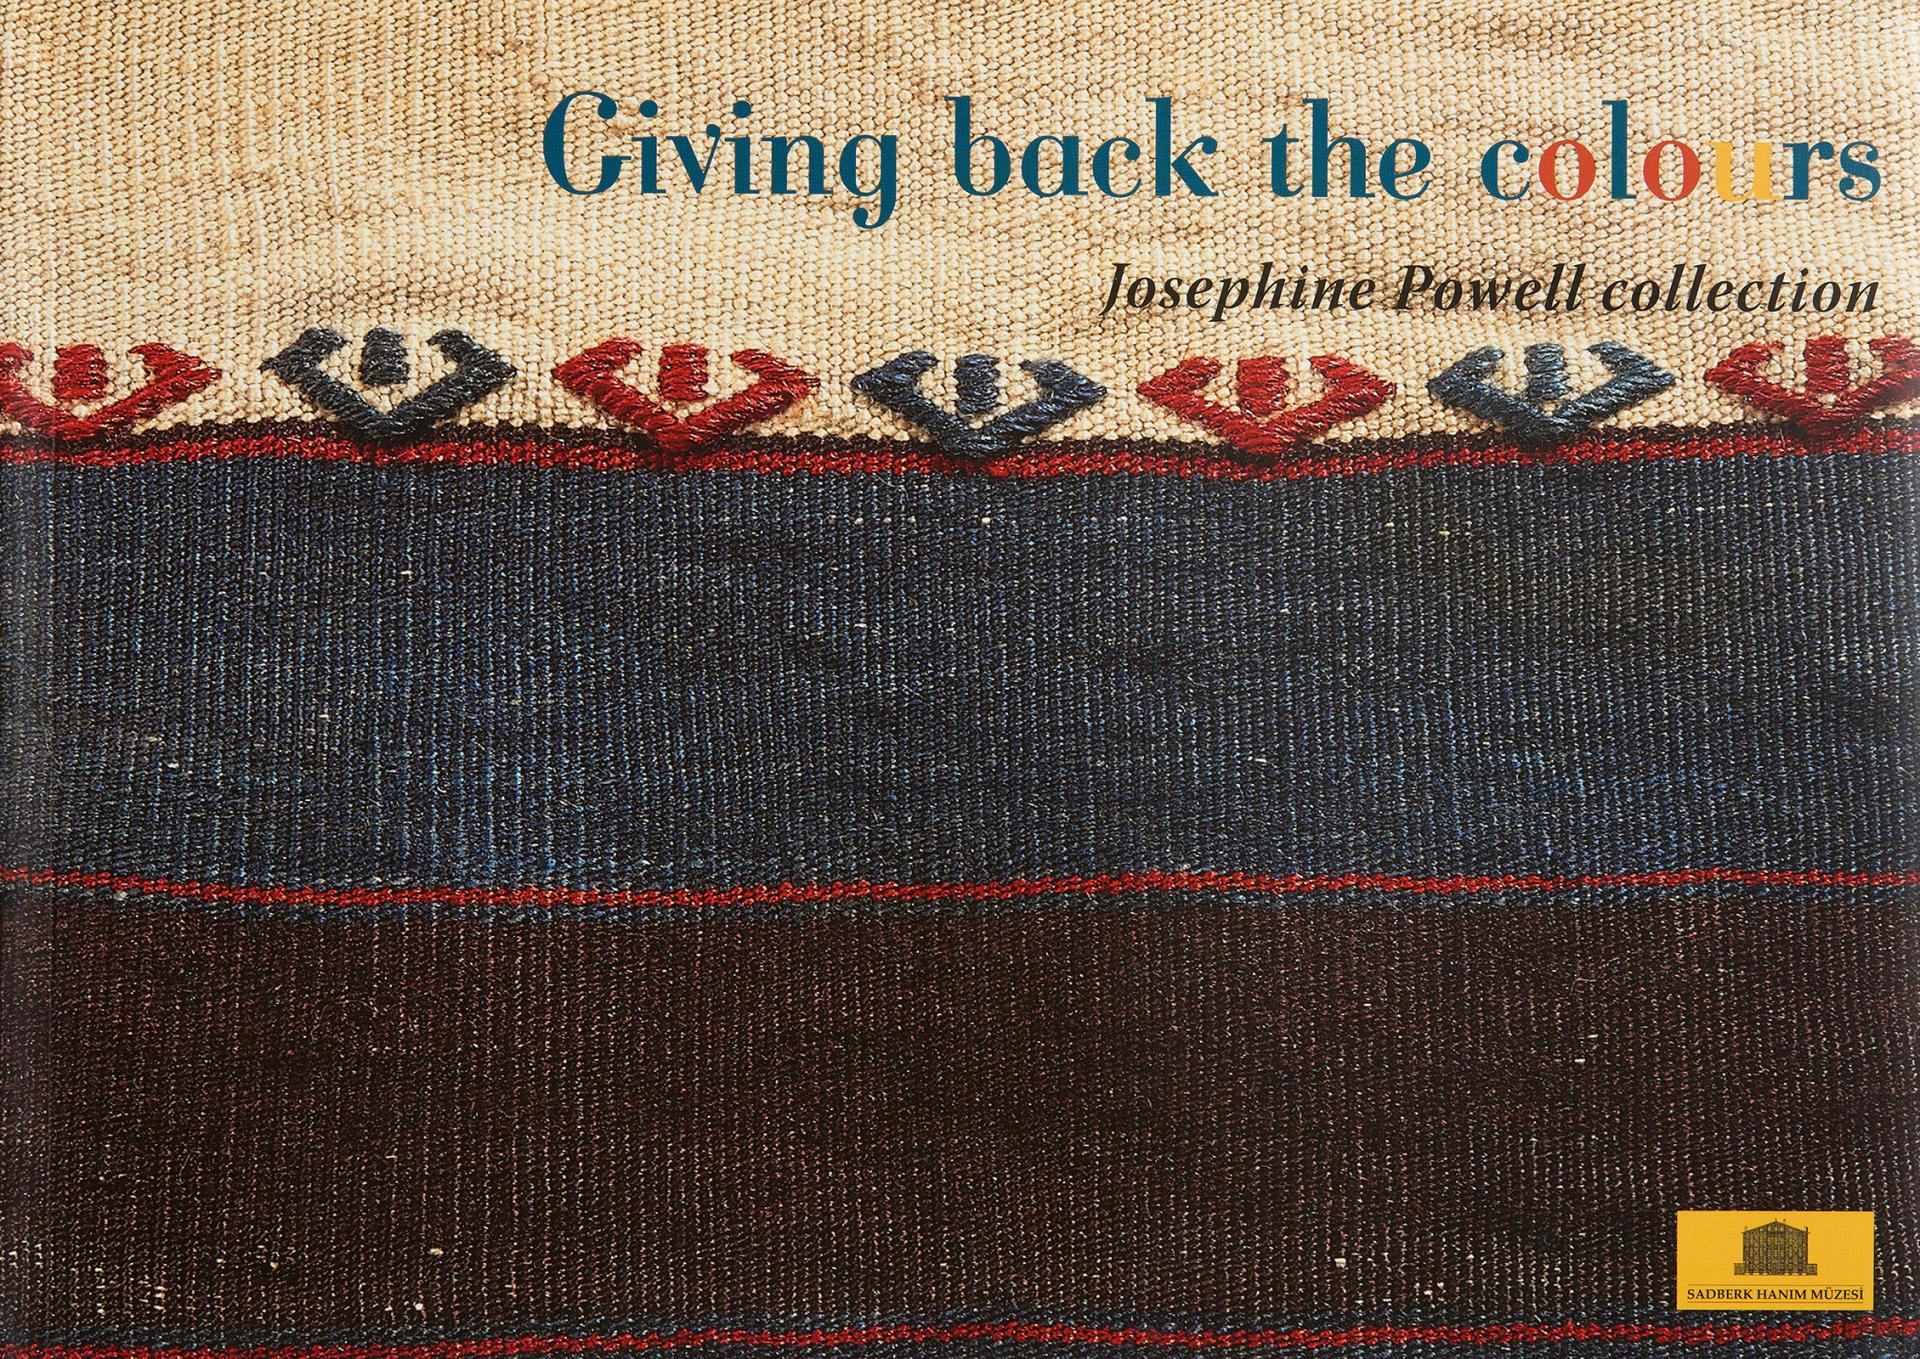 Giving Back The Colours - Josephine Powell Collection - KİTAPLAR - Sadberk Hanım Müzesi